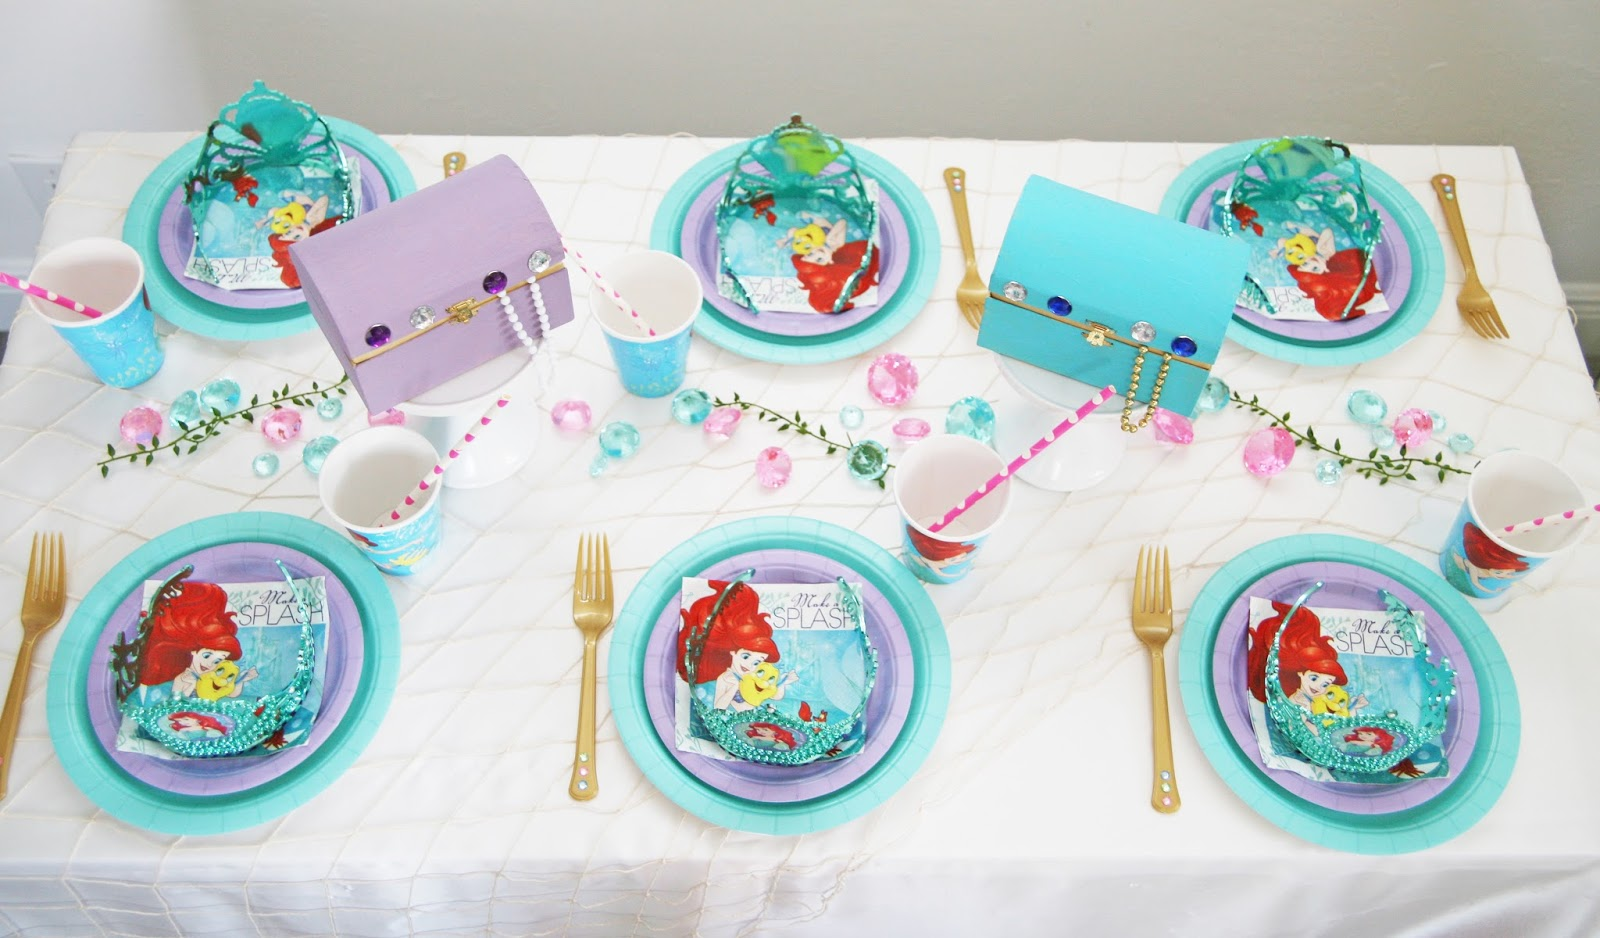 The Little Mermaid Party by The Celebration Stylist